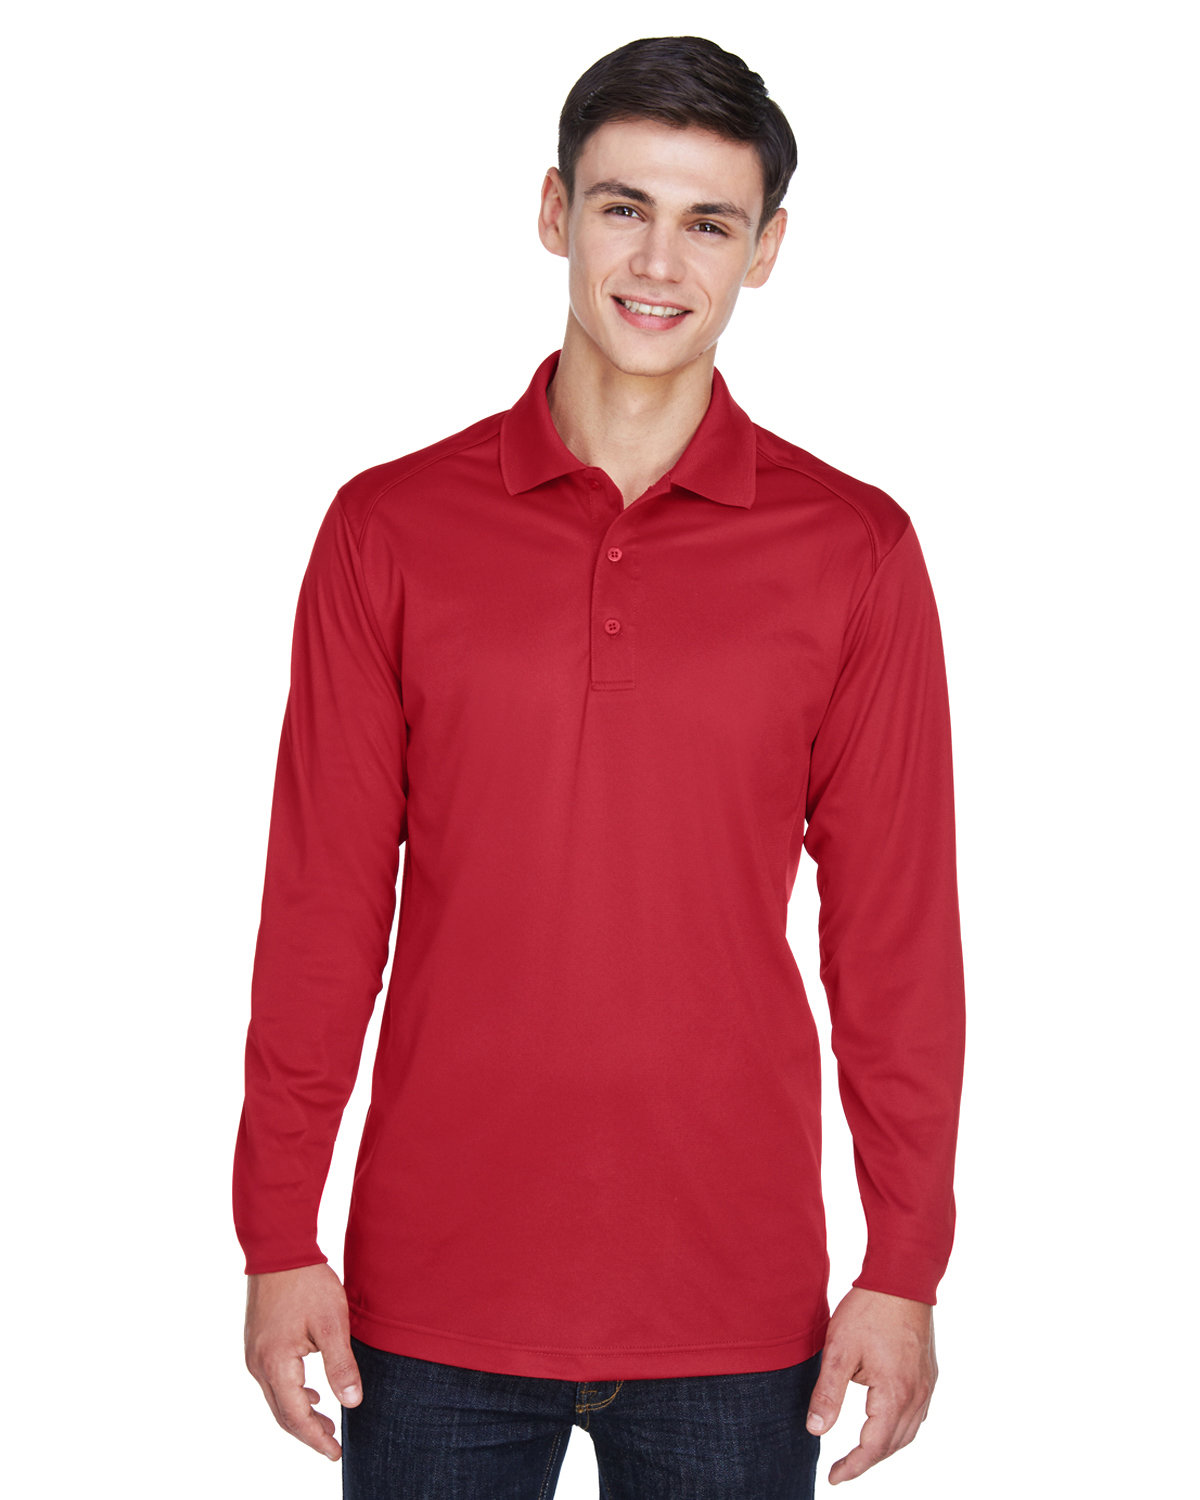 Extreme Men's Eperformance™ Snag Protection Long-Sleeve Polo CLASSIC RED